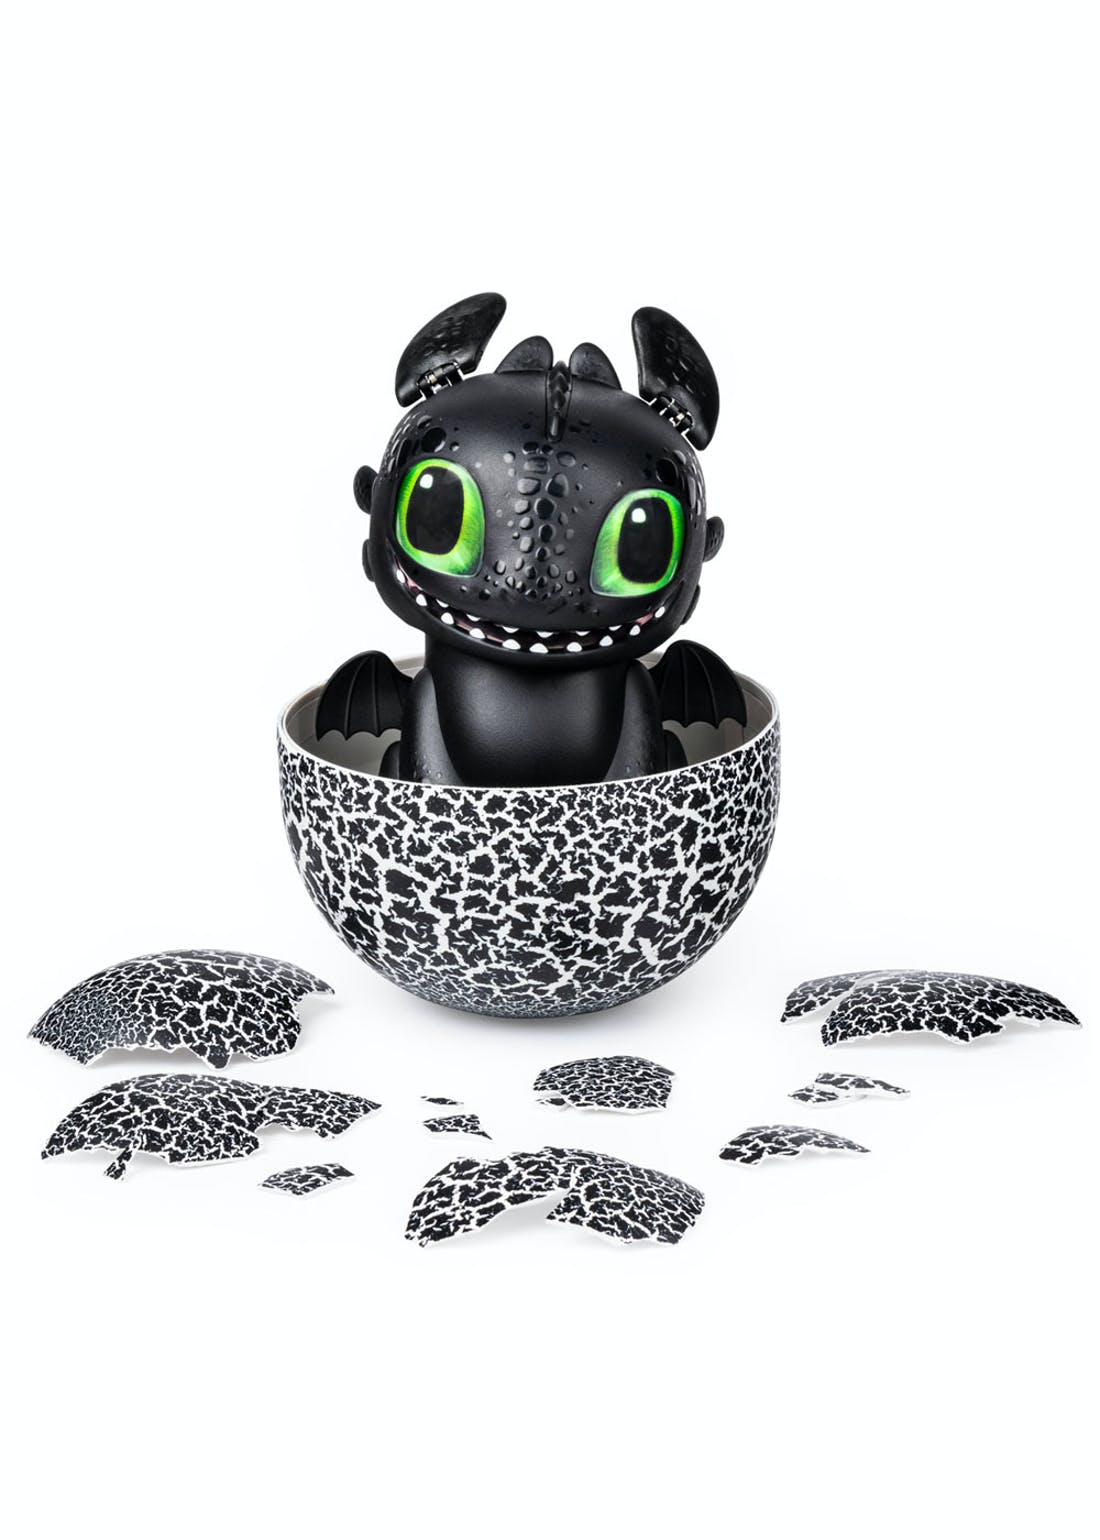 DreamWorks Dragons Hatching Interactive Baby Dragon - Toothless (26cm x 20.5cm x 16.5cm)